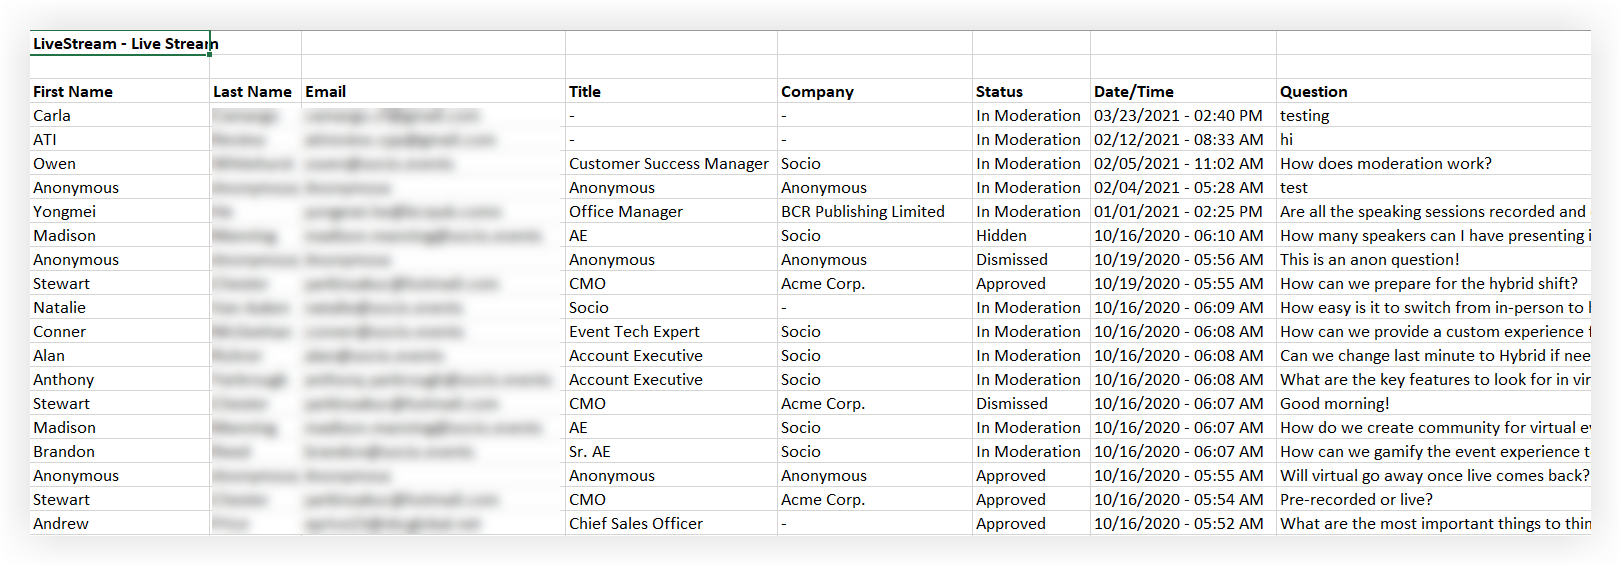 Screenshot of the Q&A report open in Excel.